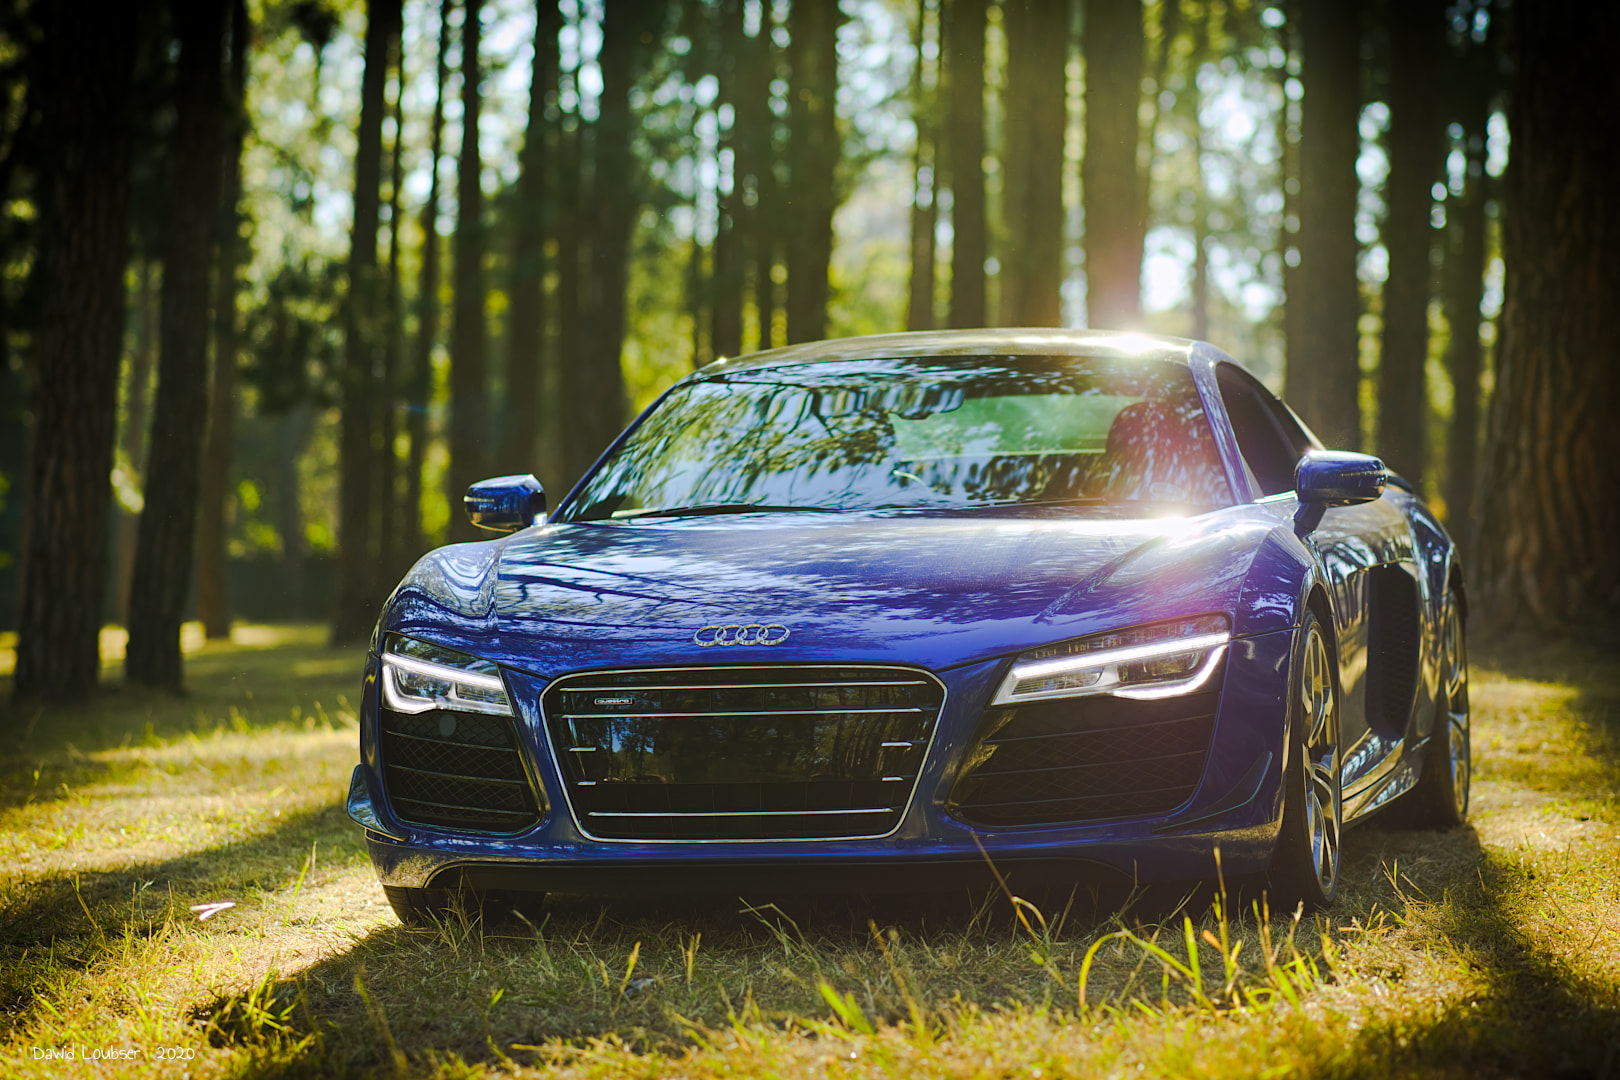 000371-r8s-forest-tyron-front-left.jpg